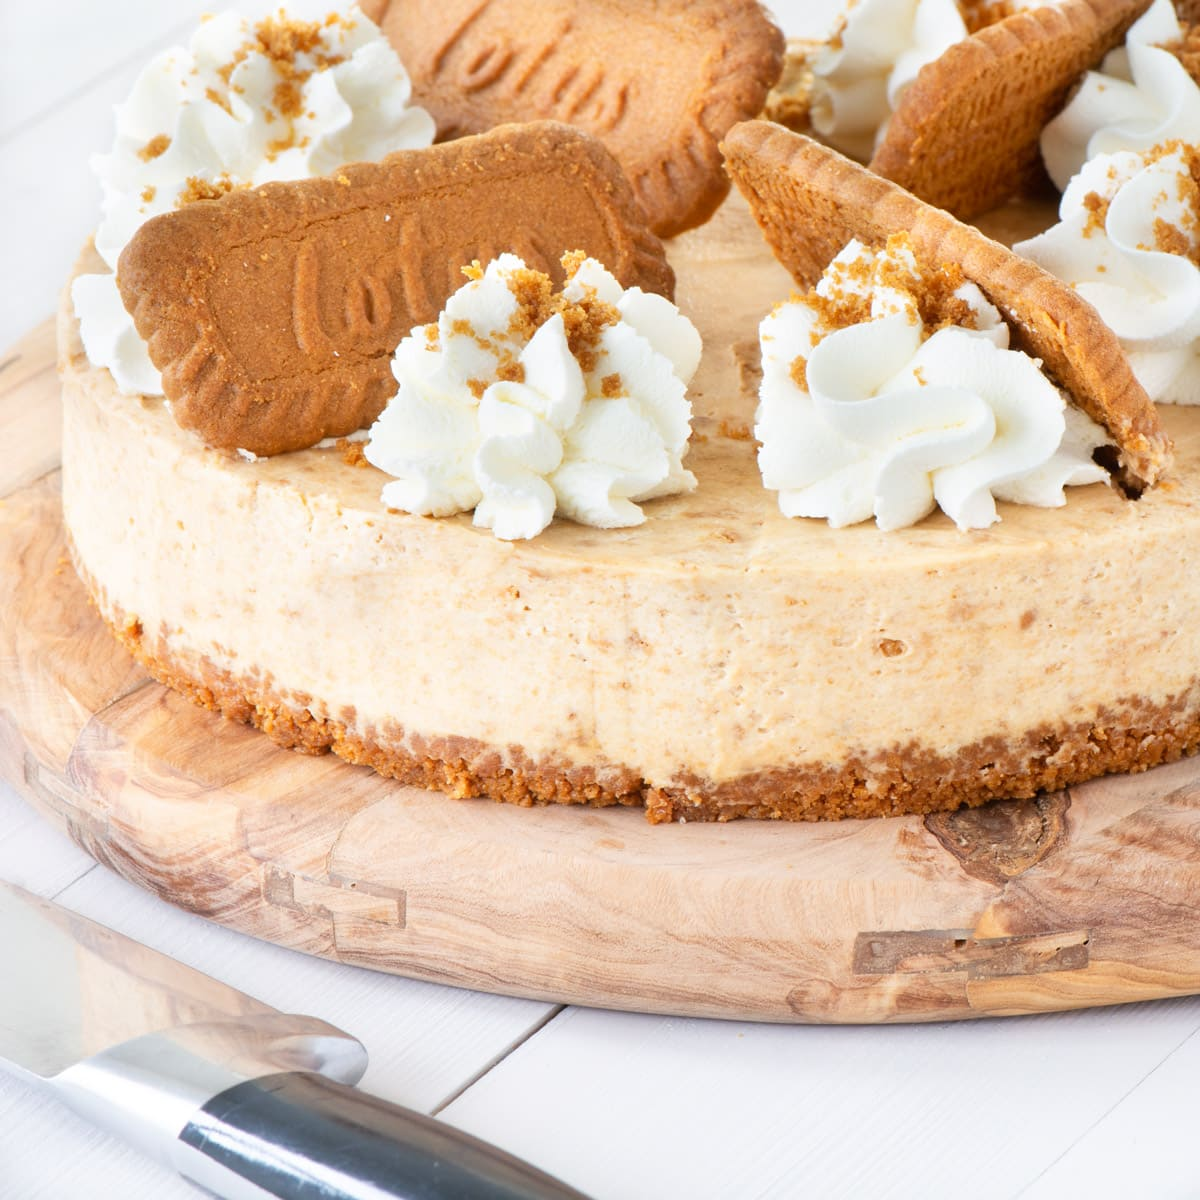 A Biscoff cheesecake on a wooden board. The cheesecake is topped with whipped cream and biscuits. There is a knife in the foreground.